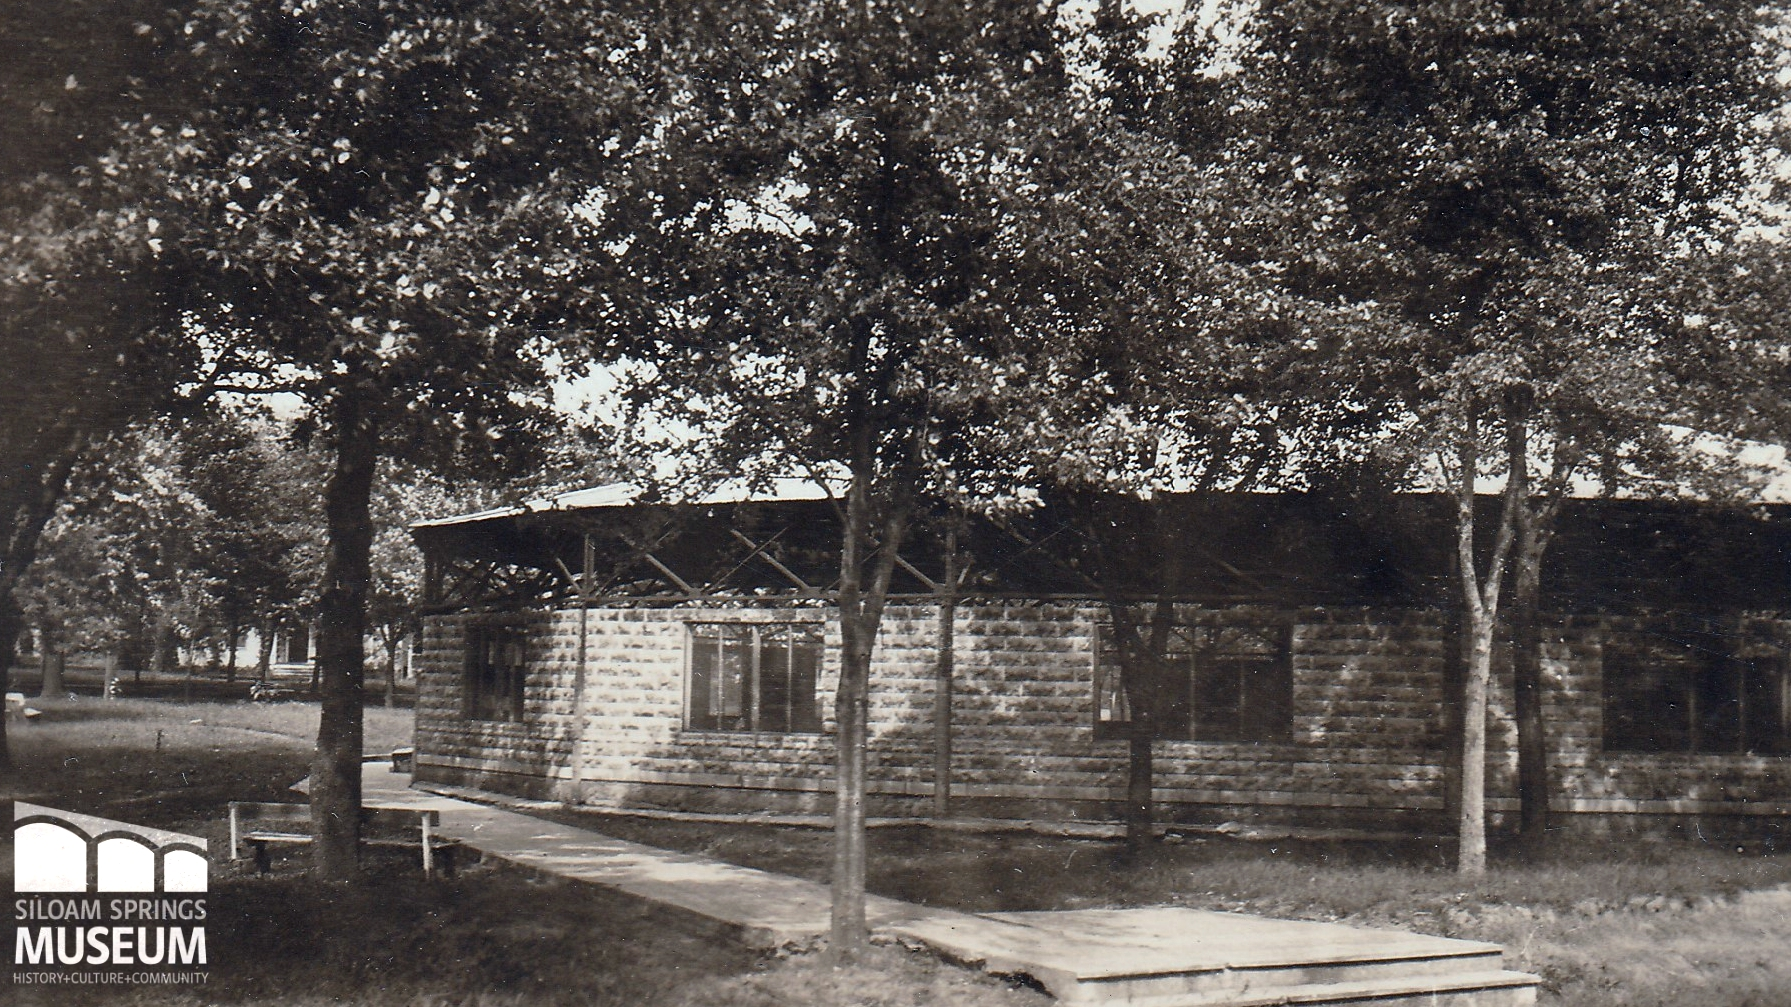 This photo, taken in the 1920's, depicts the 1907 Chautauqua building.